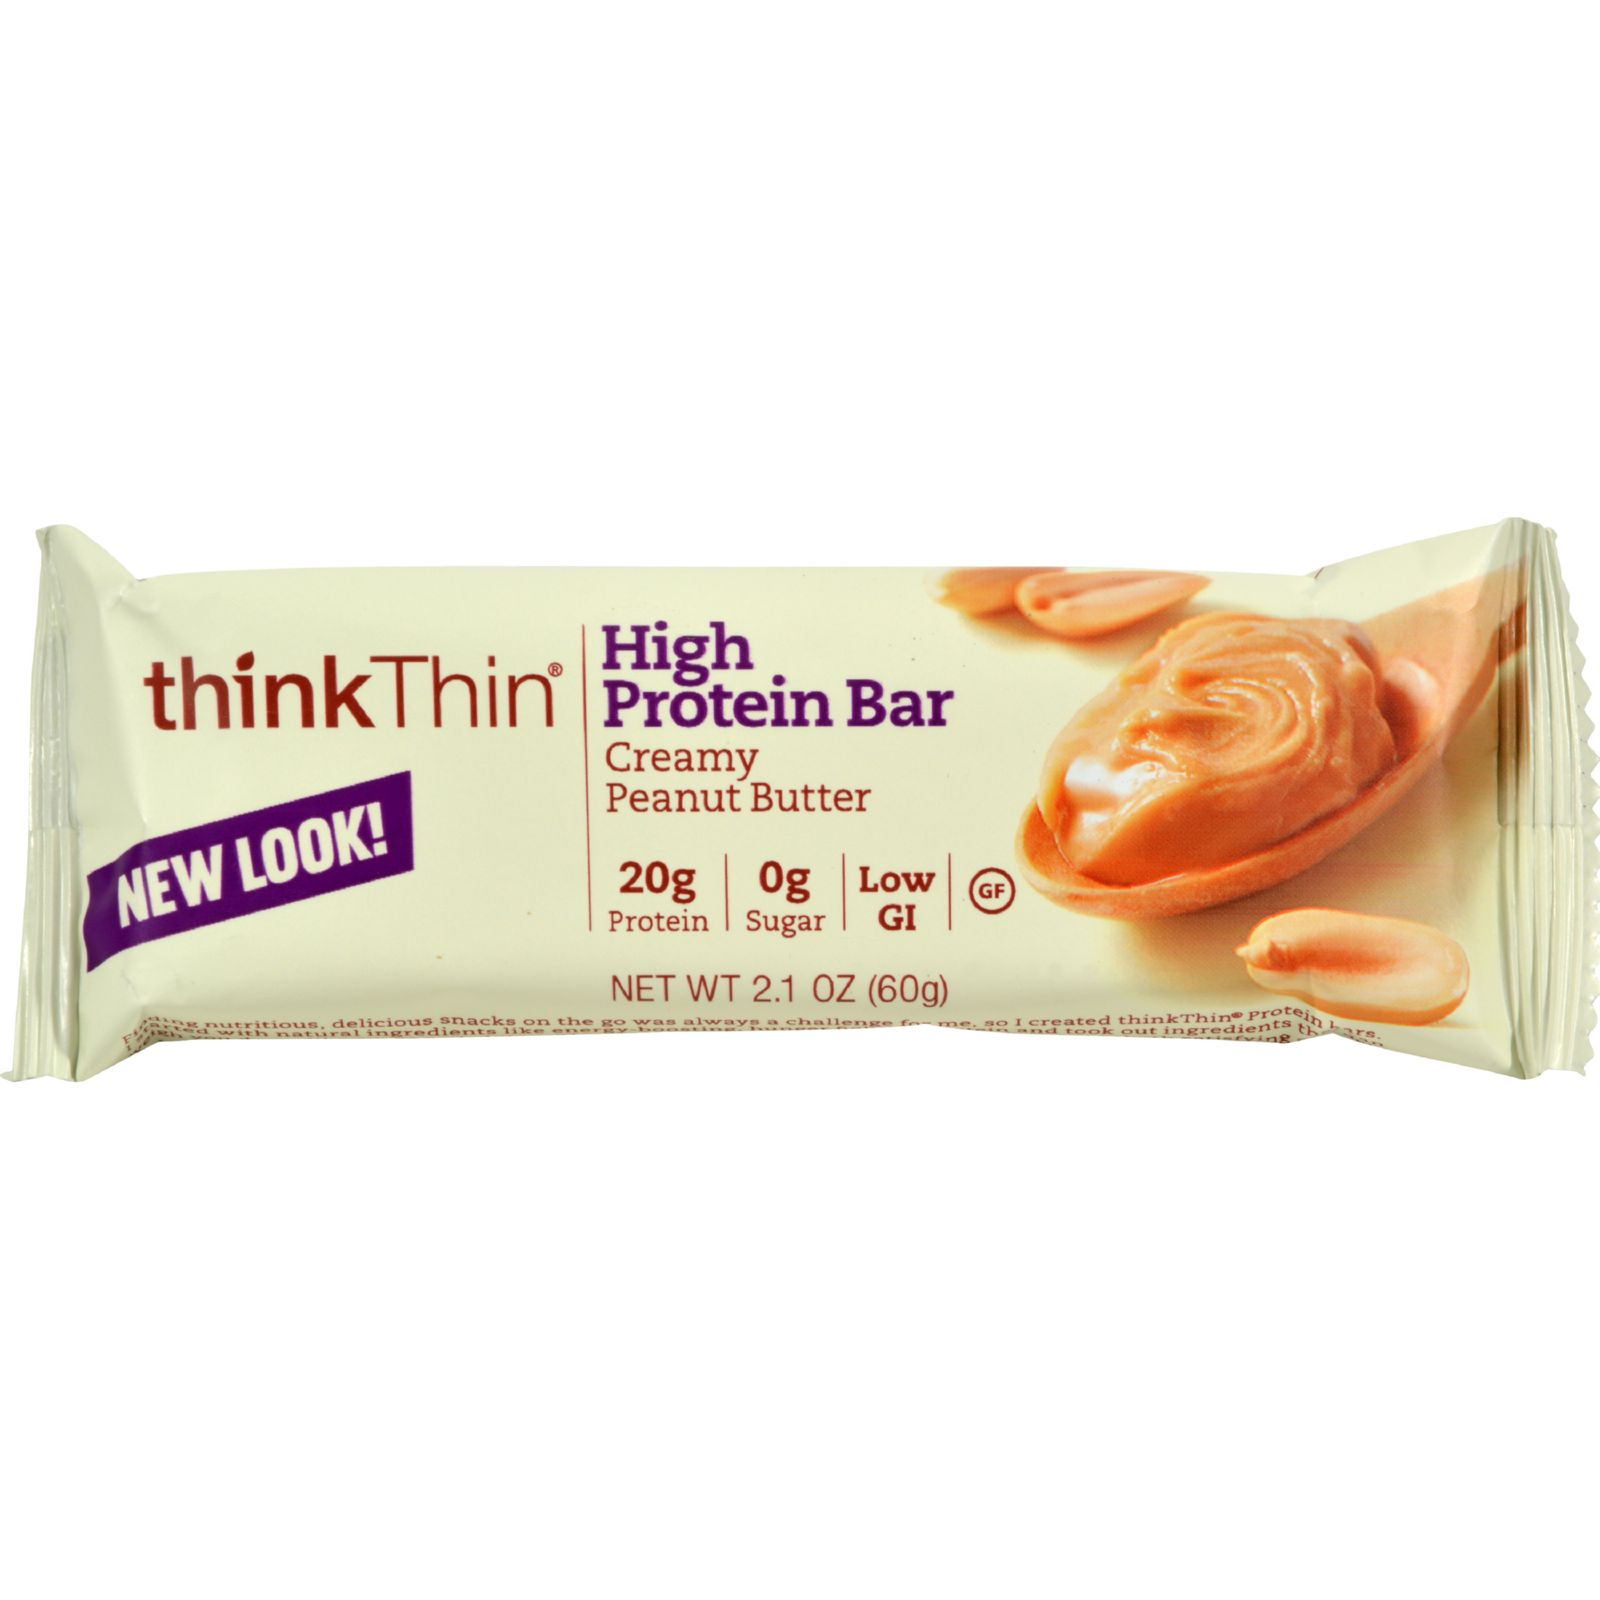 Delivering 20g protein with 0g sugar, thinkThin protein bars are the ideal food on the go for an active weight management lifestyle. Delicious and satisfying, thinkThin protein bars provide energy without the punishing side effects of sugar and gluten.